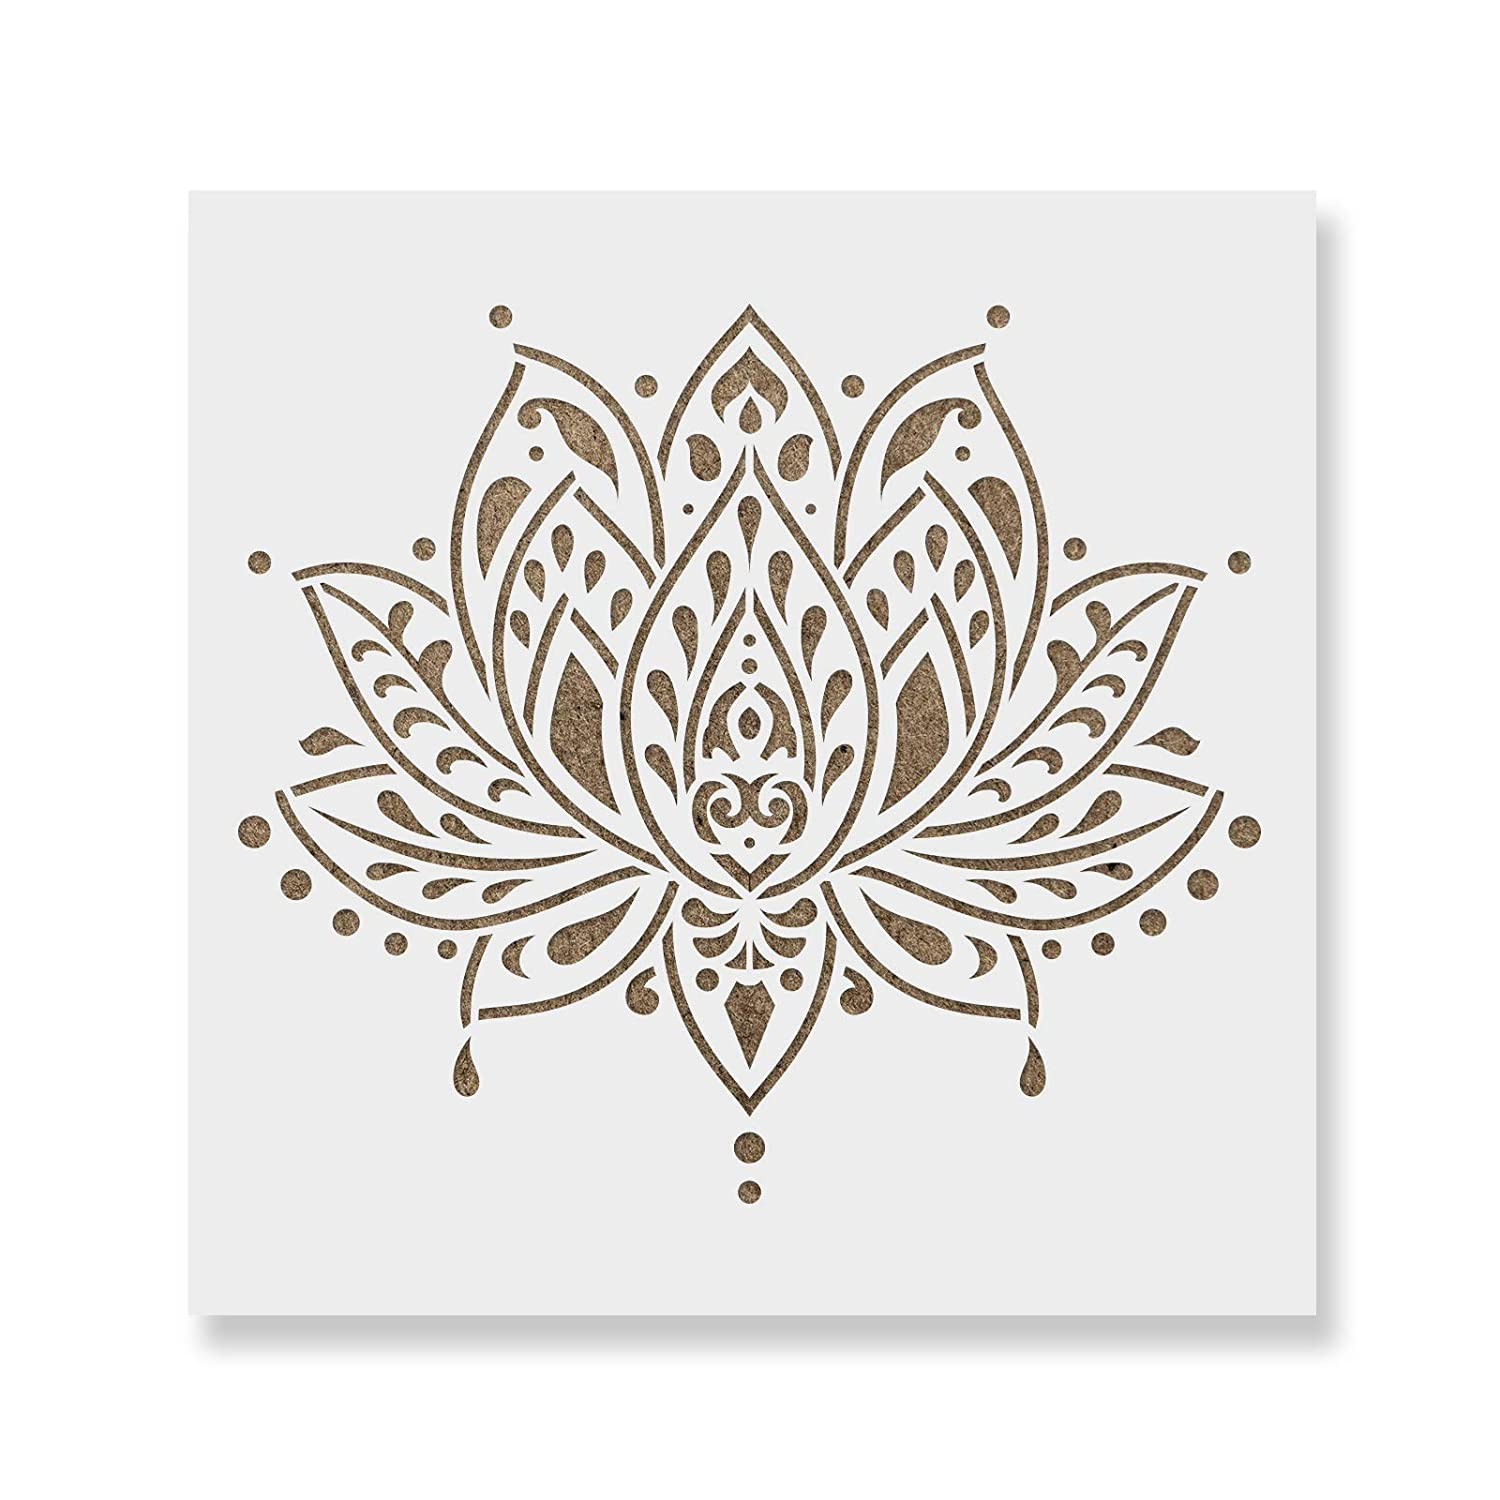 Amazon sacred lotus flower stencil template for walls and amazon sacred lotus flower stencil template for walls and crafts reusable stencils for painting in small large sizes izmirmasajfo